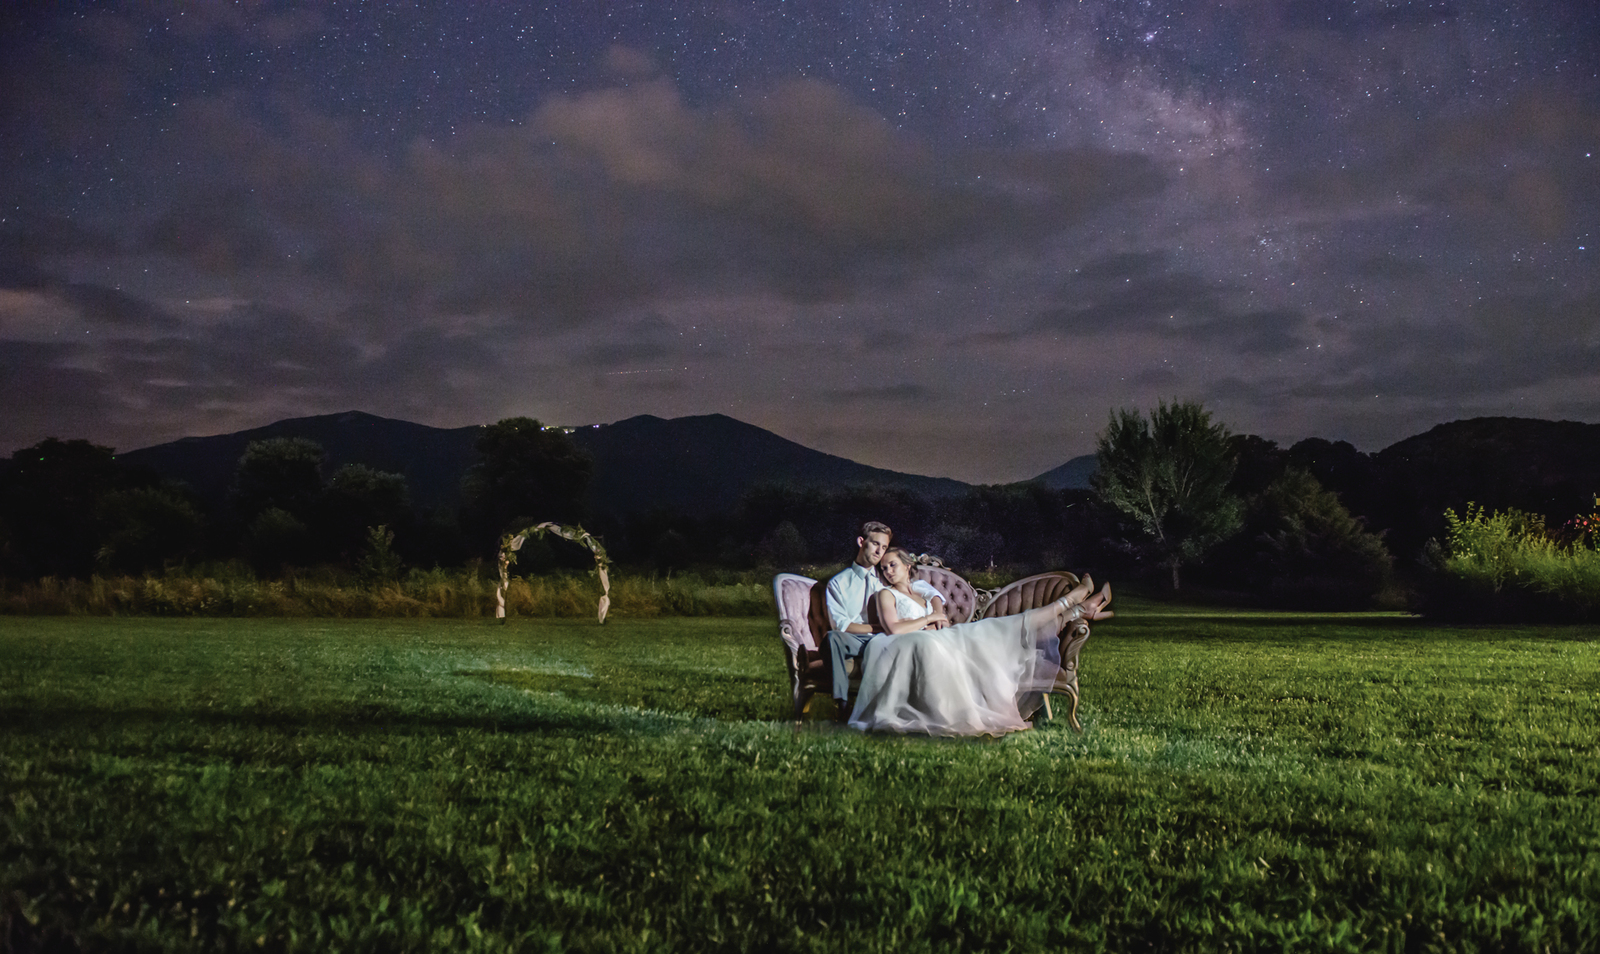 wedding photography by swadley studio in luray va at khimaira farm